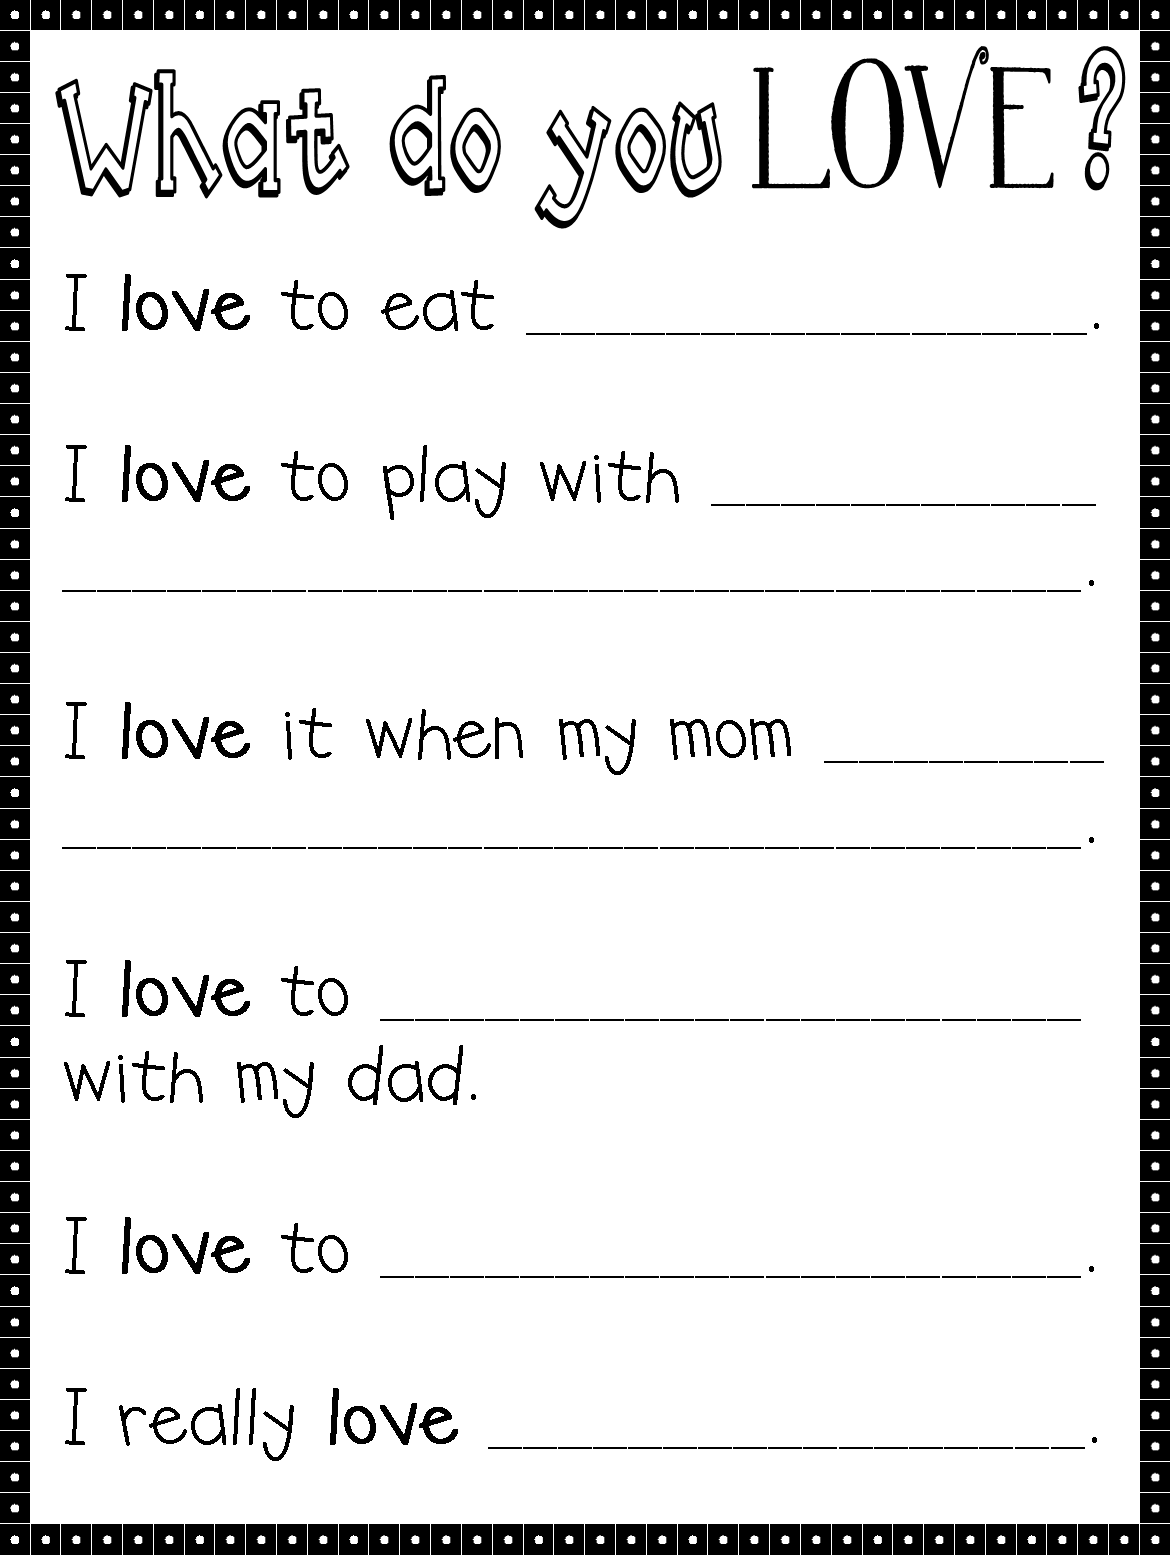 Since Valentine S Day Is All About Love Here S A Little Writing Activity You Can Do With